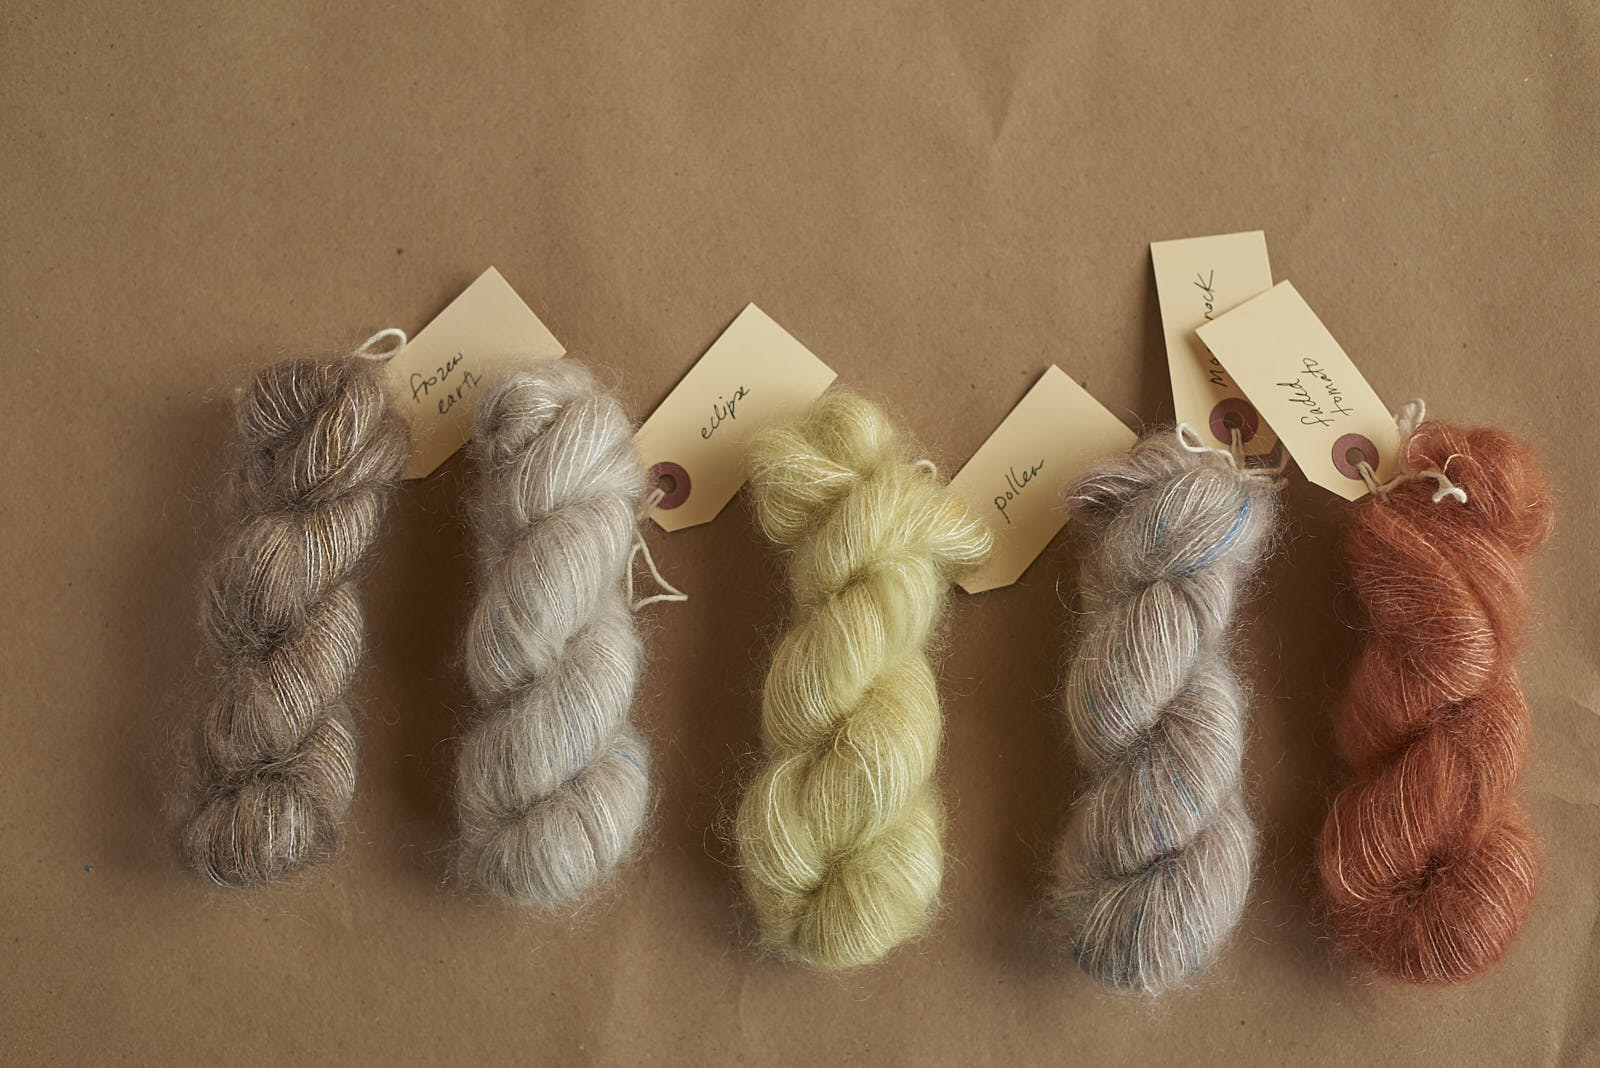 25g skeins of Mohair Lace intended for  Watashi no Yume  socks…there will be even more colours, but here's just a taste…  from left to right: Frozen Earth, Eclipse, Pollen, Moonrock & Faded Tomato